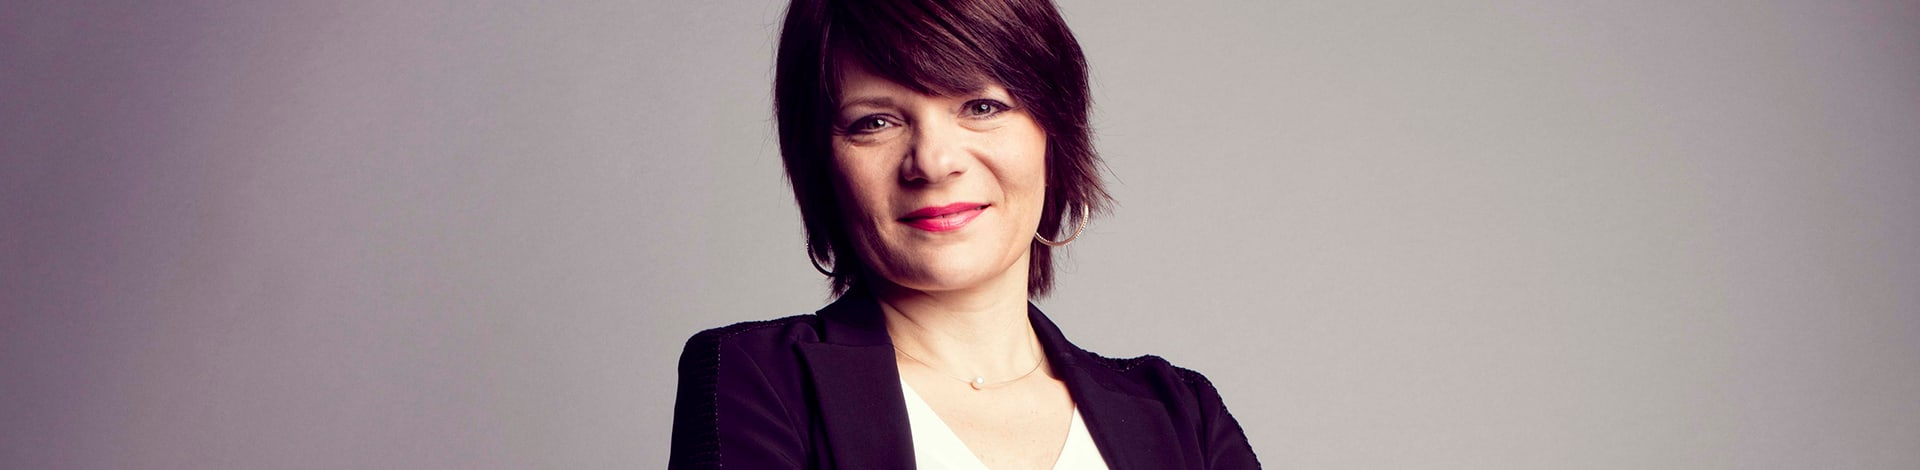 Nathalie Bourquenoud